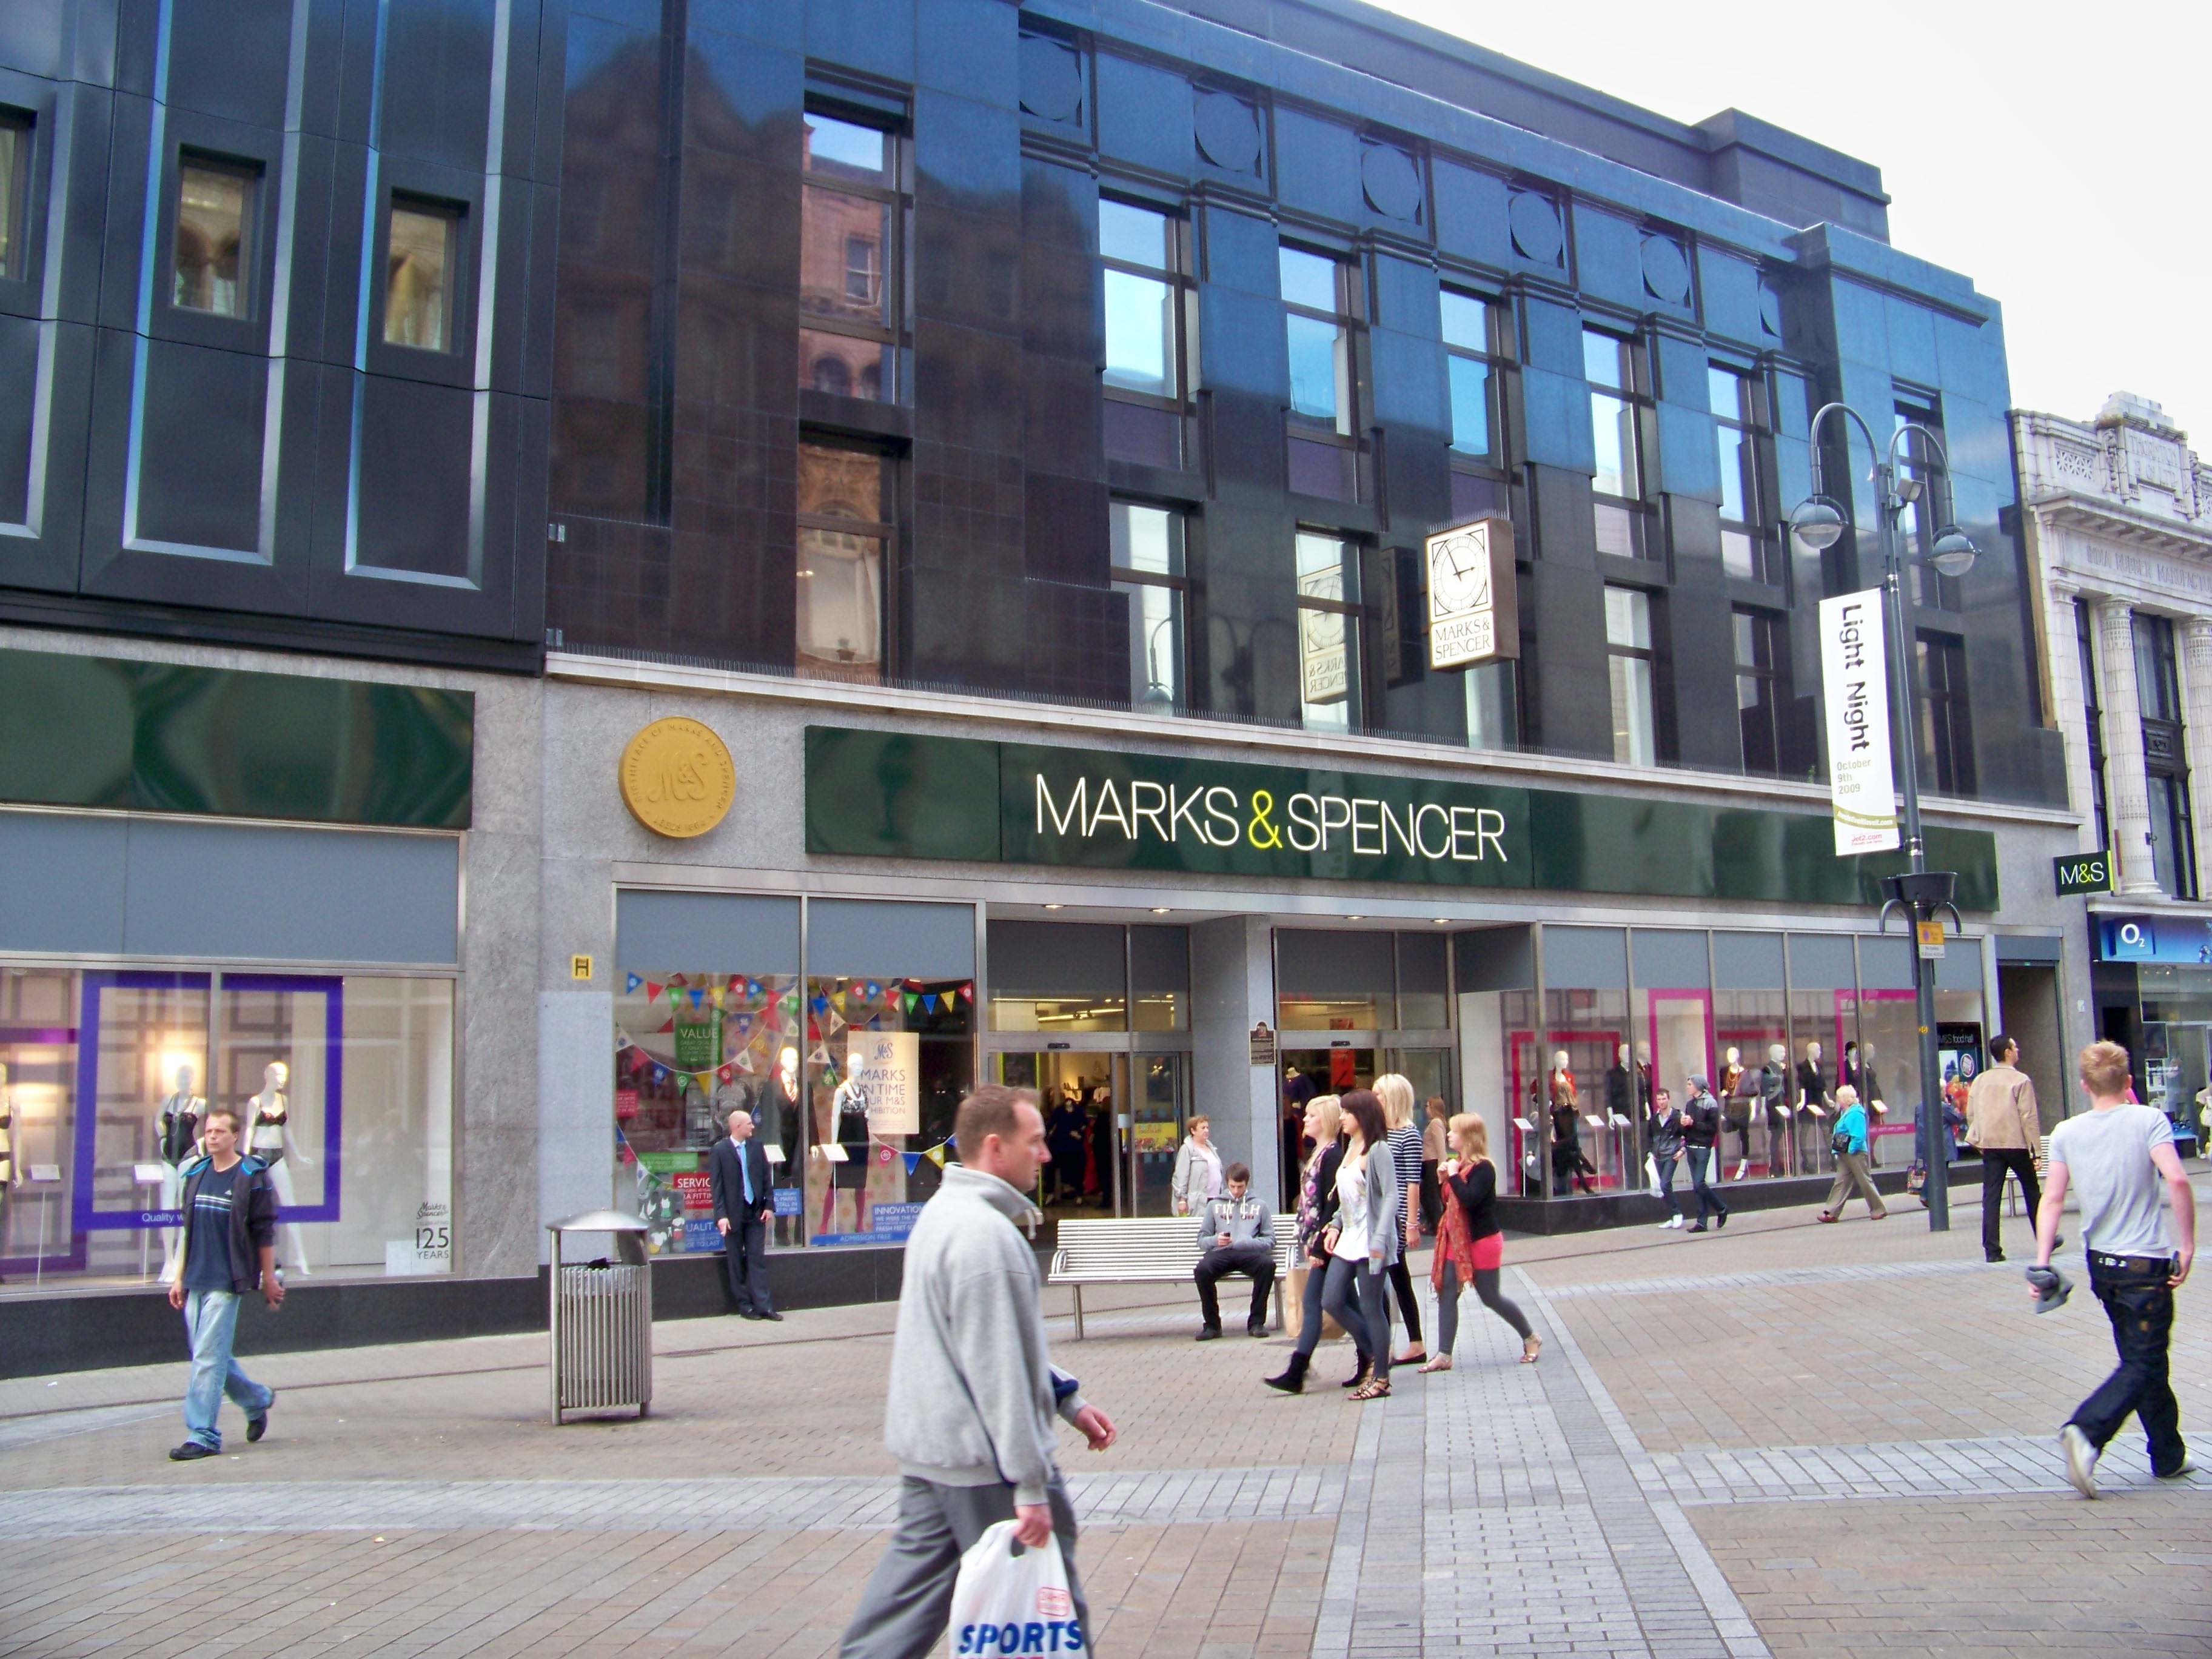 marks spencer marketing planning and Marks & spencer: what the analysts say mr bolland is again hoping to draw on his own strengths in marketing in order to inject change and accelerate growth.